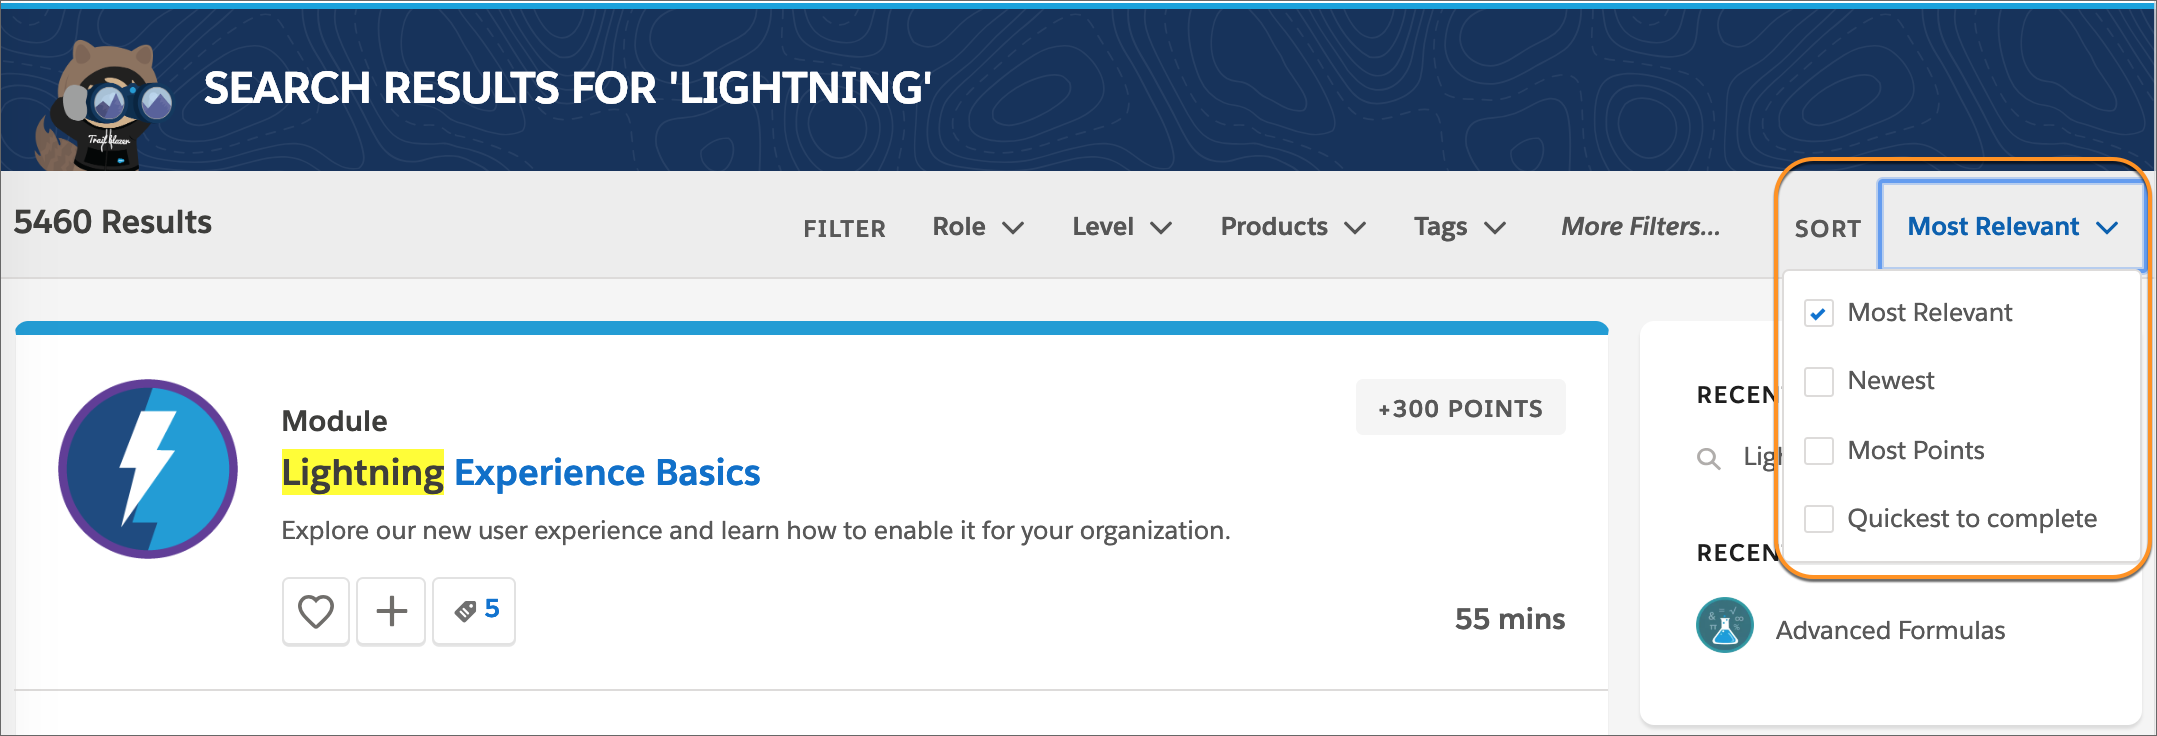 """The search results page for """"Lightning"""", with a callout around the sort dropdown and Most Relevant selected."""